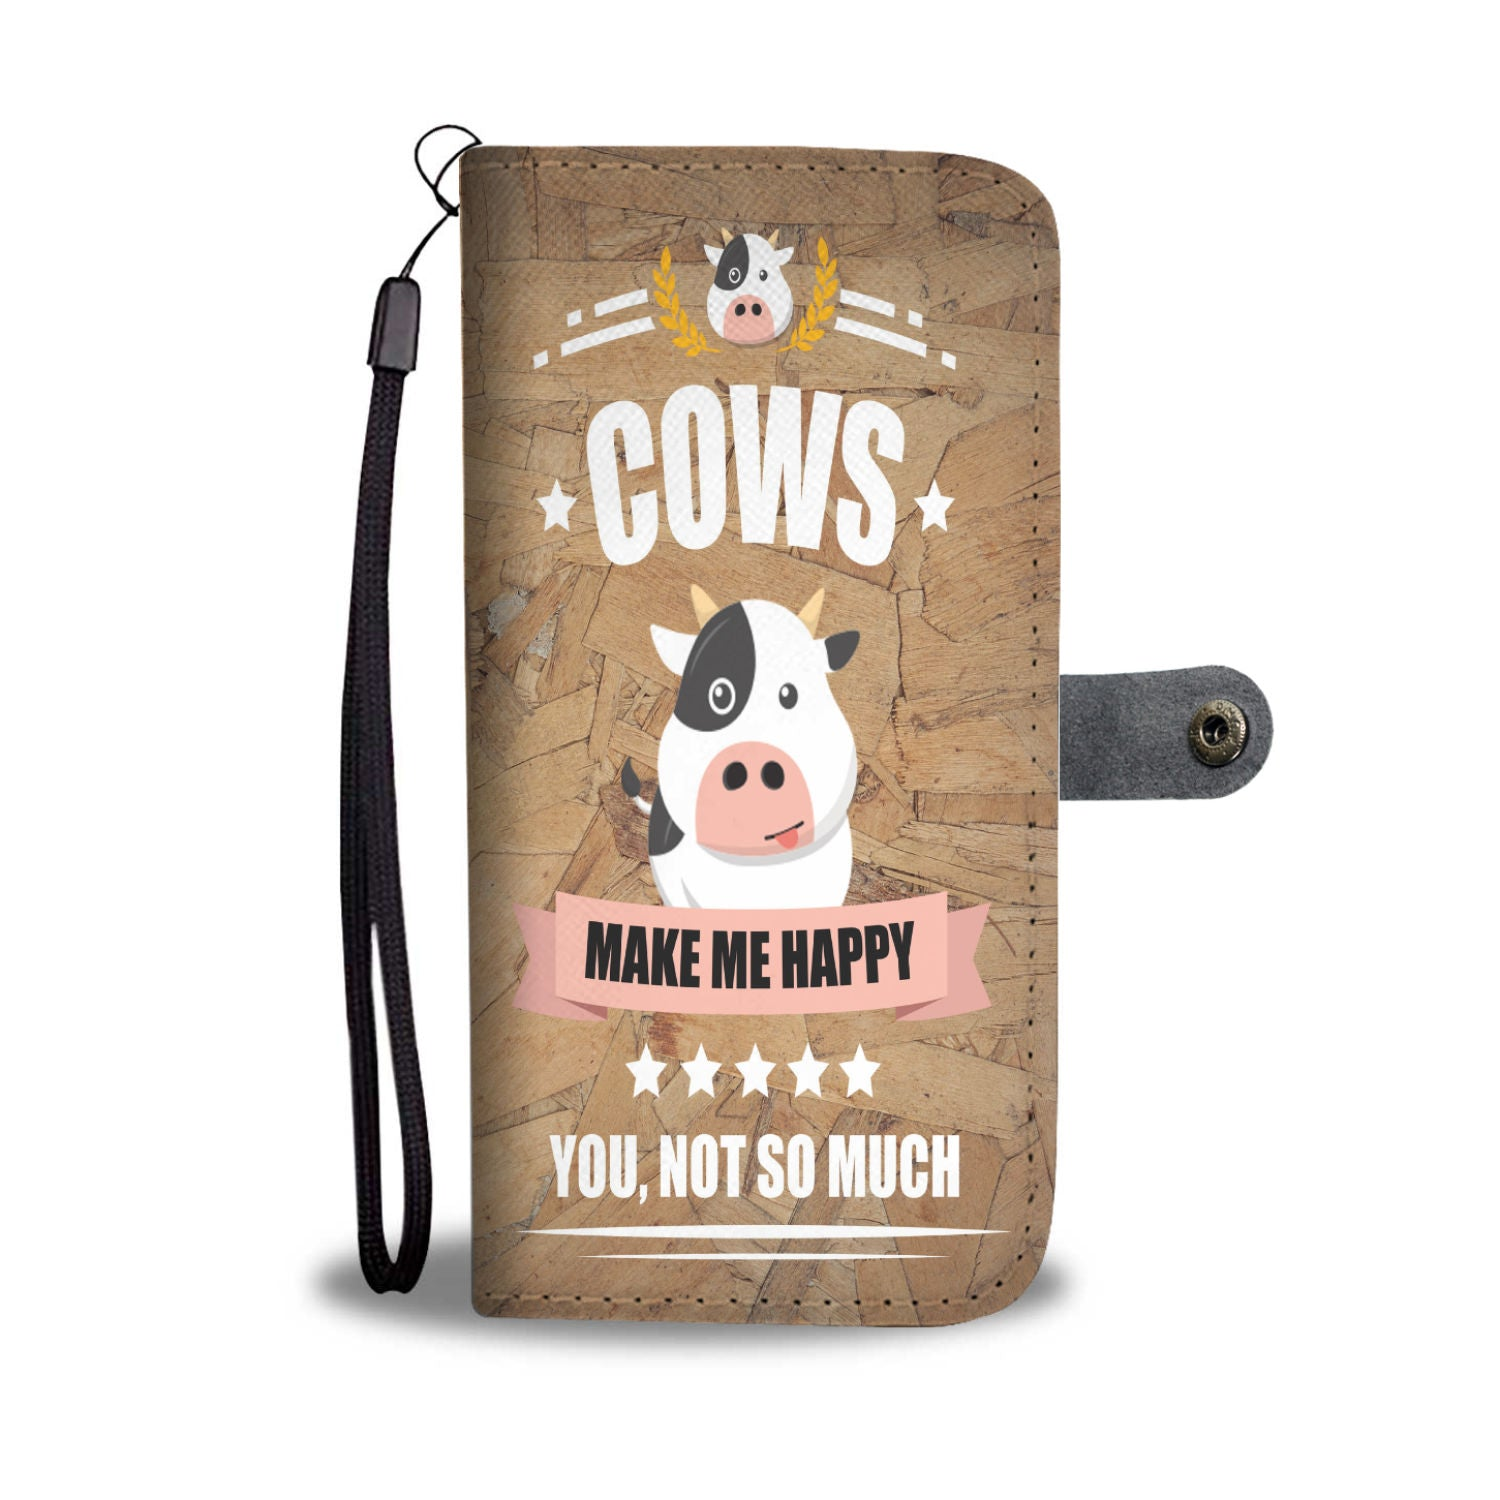 Custom Phone Wallet Available For All Phone Models Cow's Make Me Happy Phone Wallet